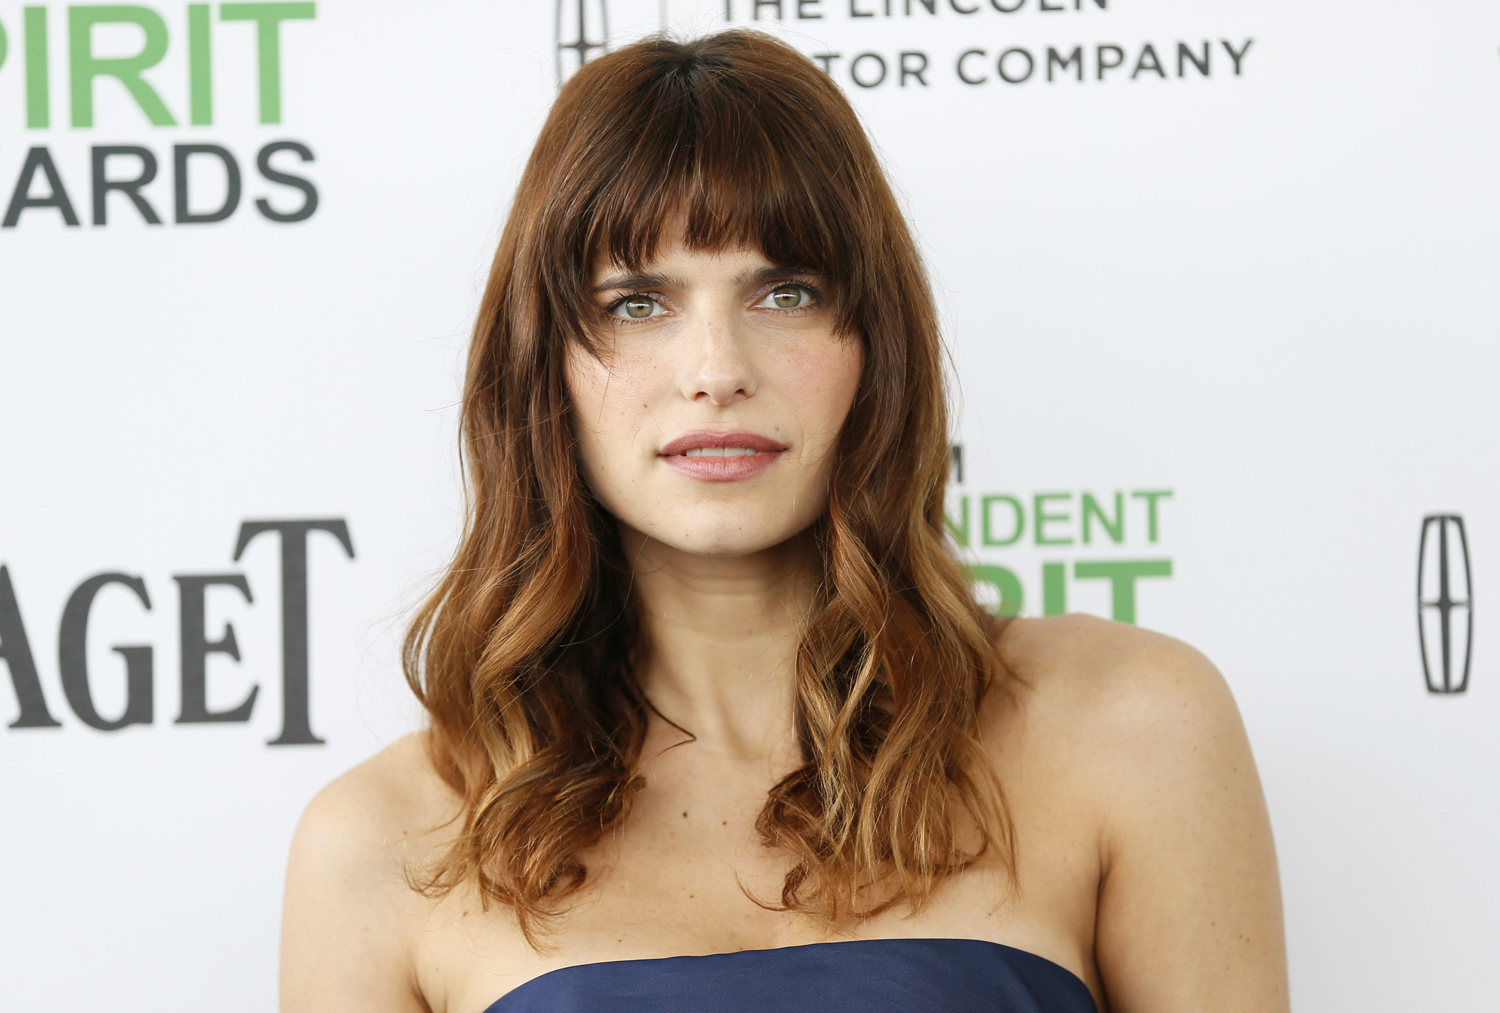 Actress Lake Bell arrives at the 2014 Film Independent Spirit Awards in Santa Monica, California on March 1, 2014.